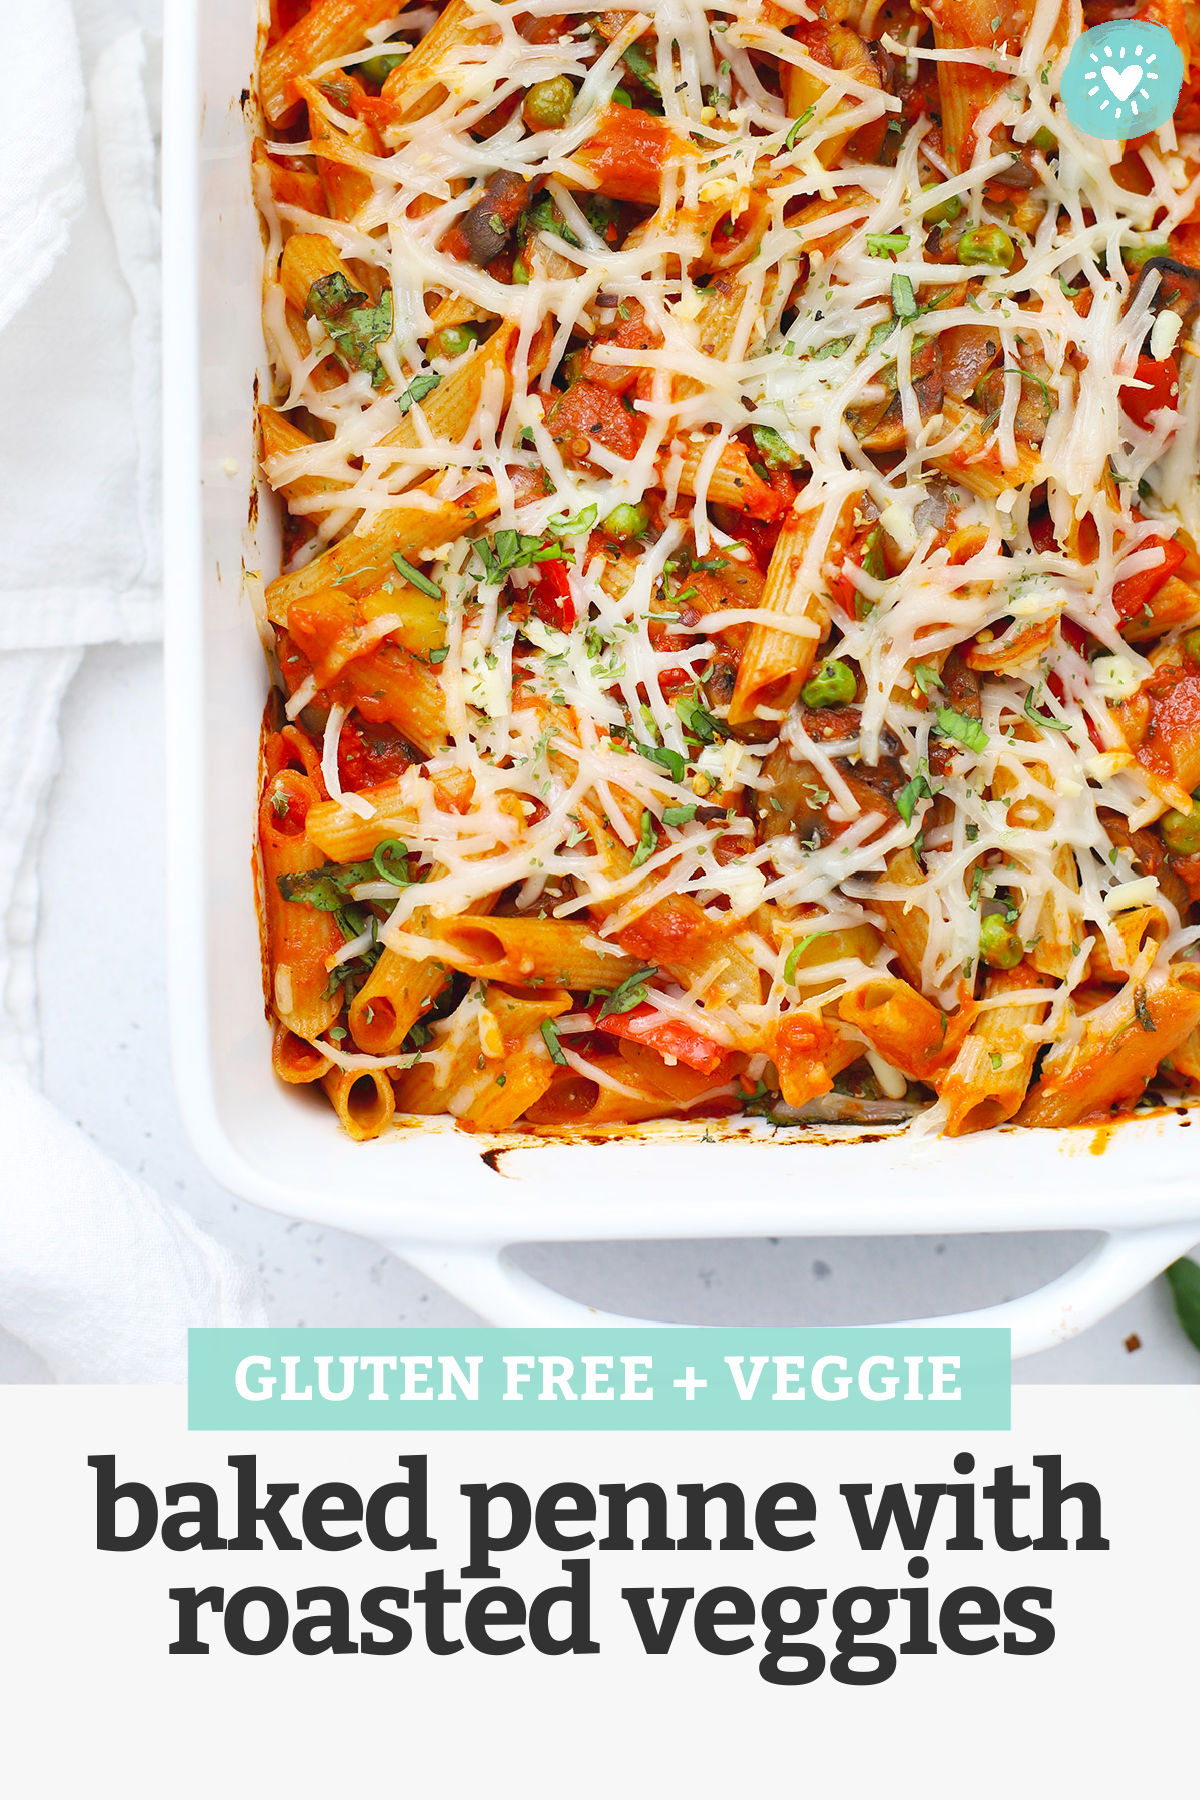 """Overhead view of a pan of baked penne with roasted veggies fresh from the oven with text overlay that reads """"Gluten-Free + Veggie Baked Penne with Roasted Veggies"""""""